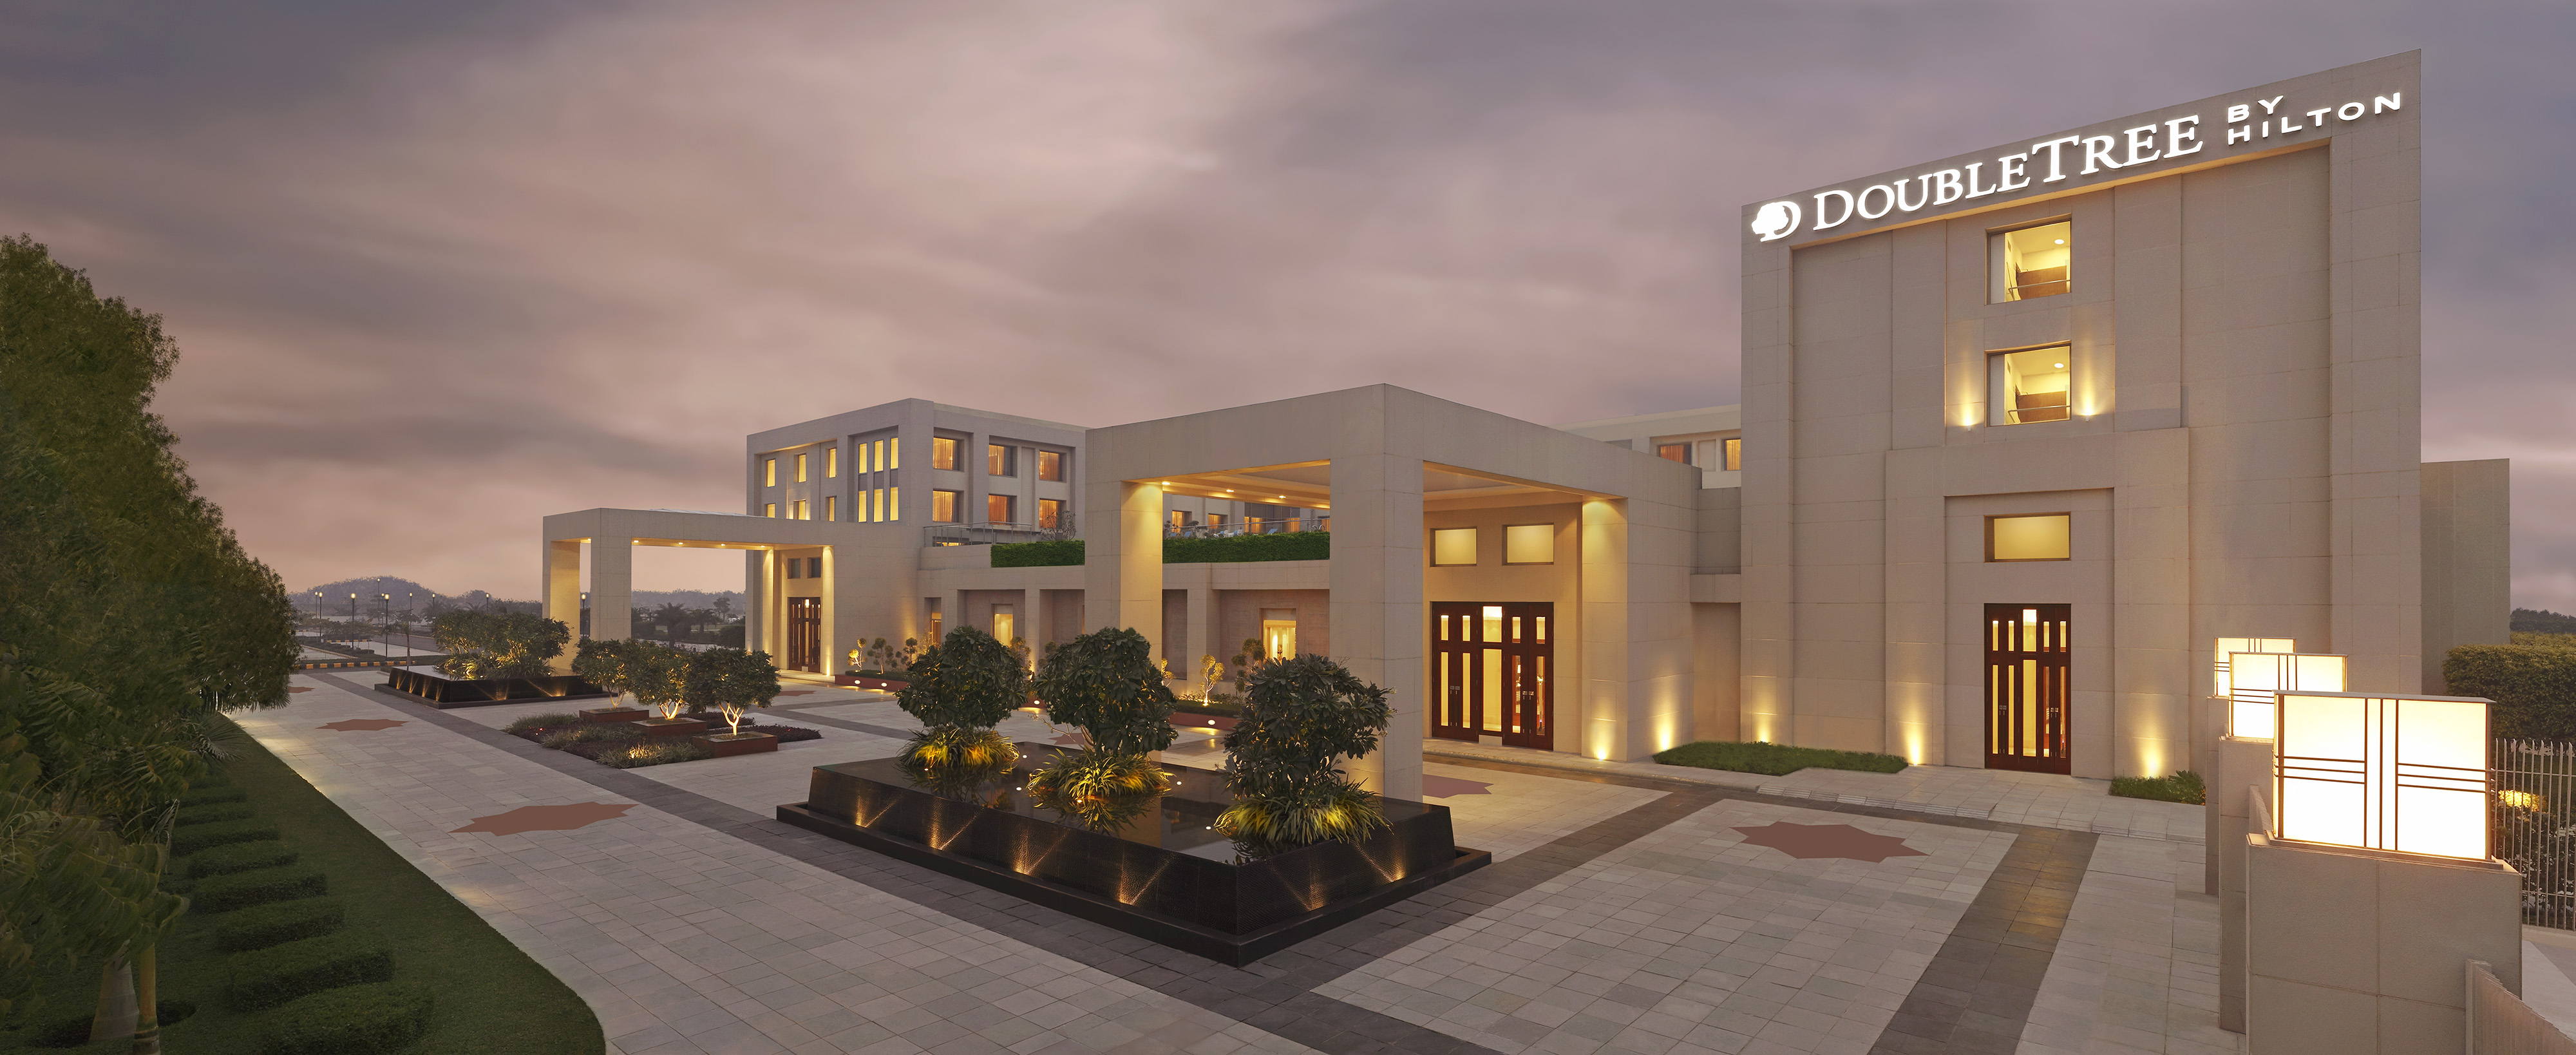 DoubleTree-by-Hilton-Agra-Exterior